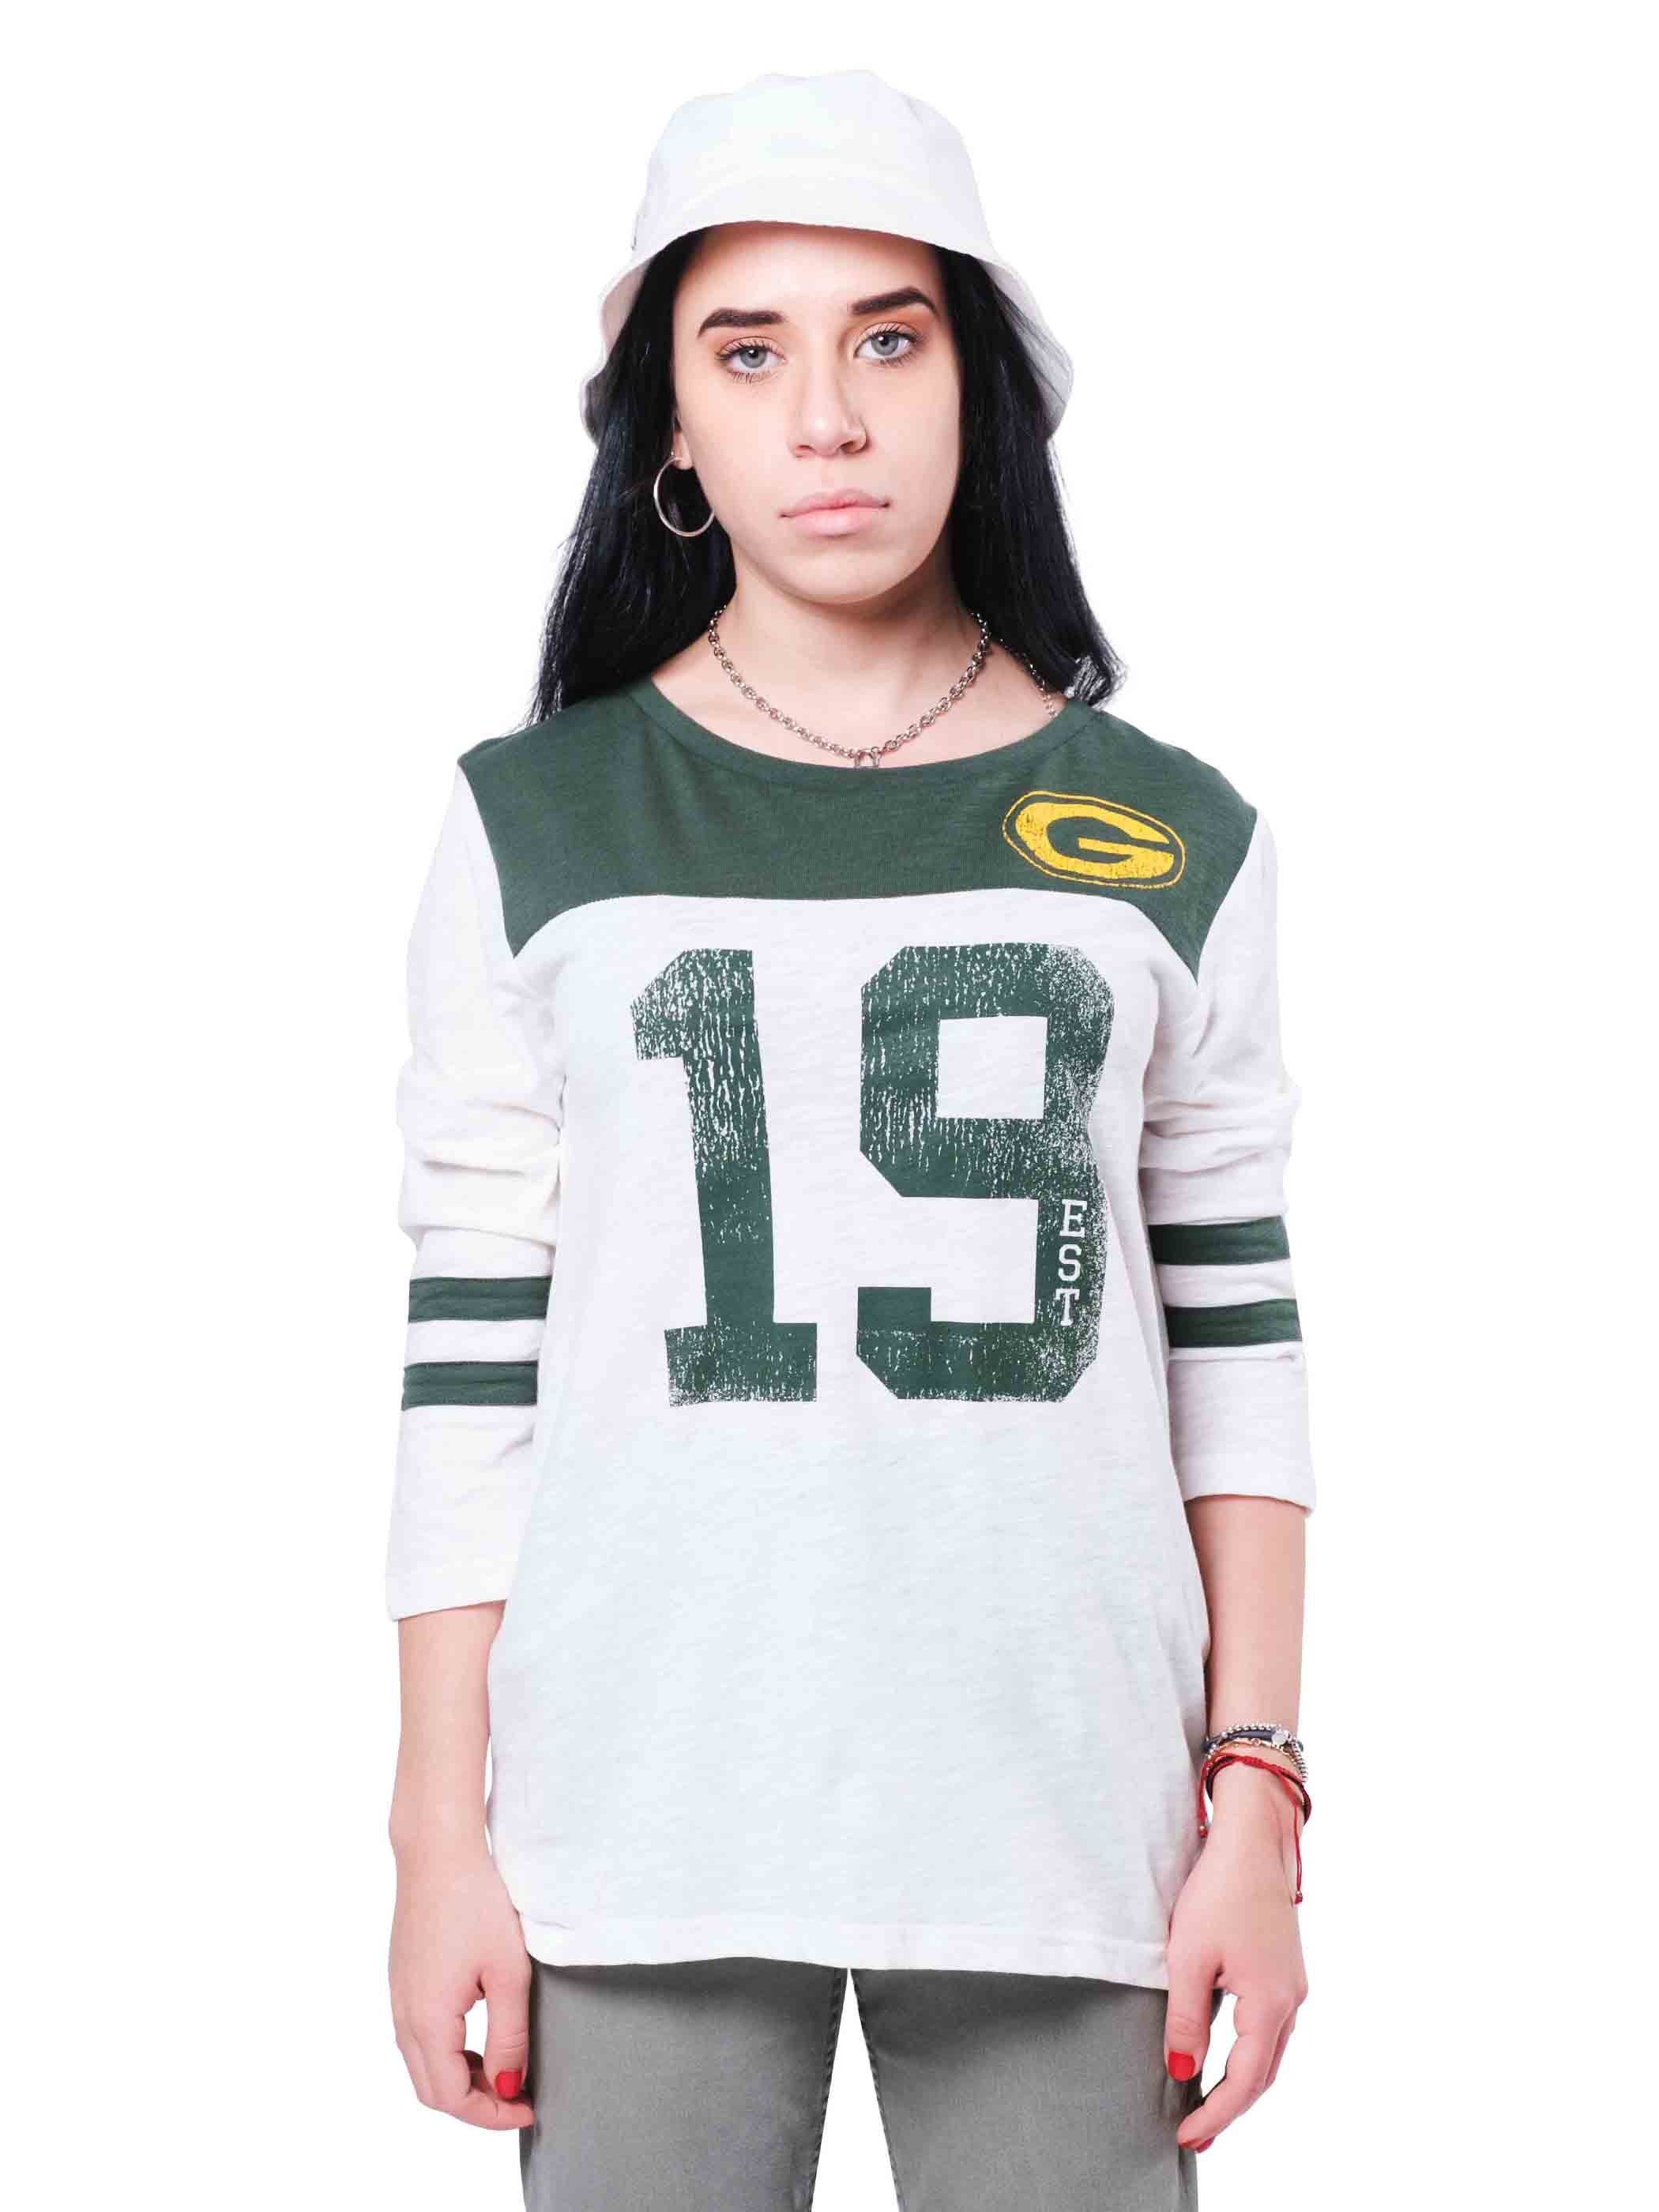 NFL Green Bay Packers Women's Vintage 3/4 Long Sleeve Tee|Green Bay Packers